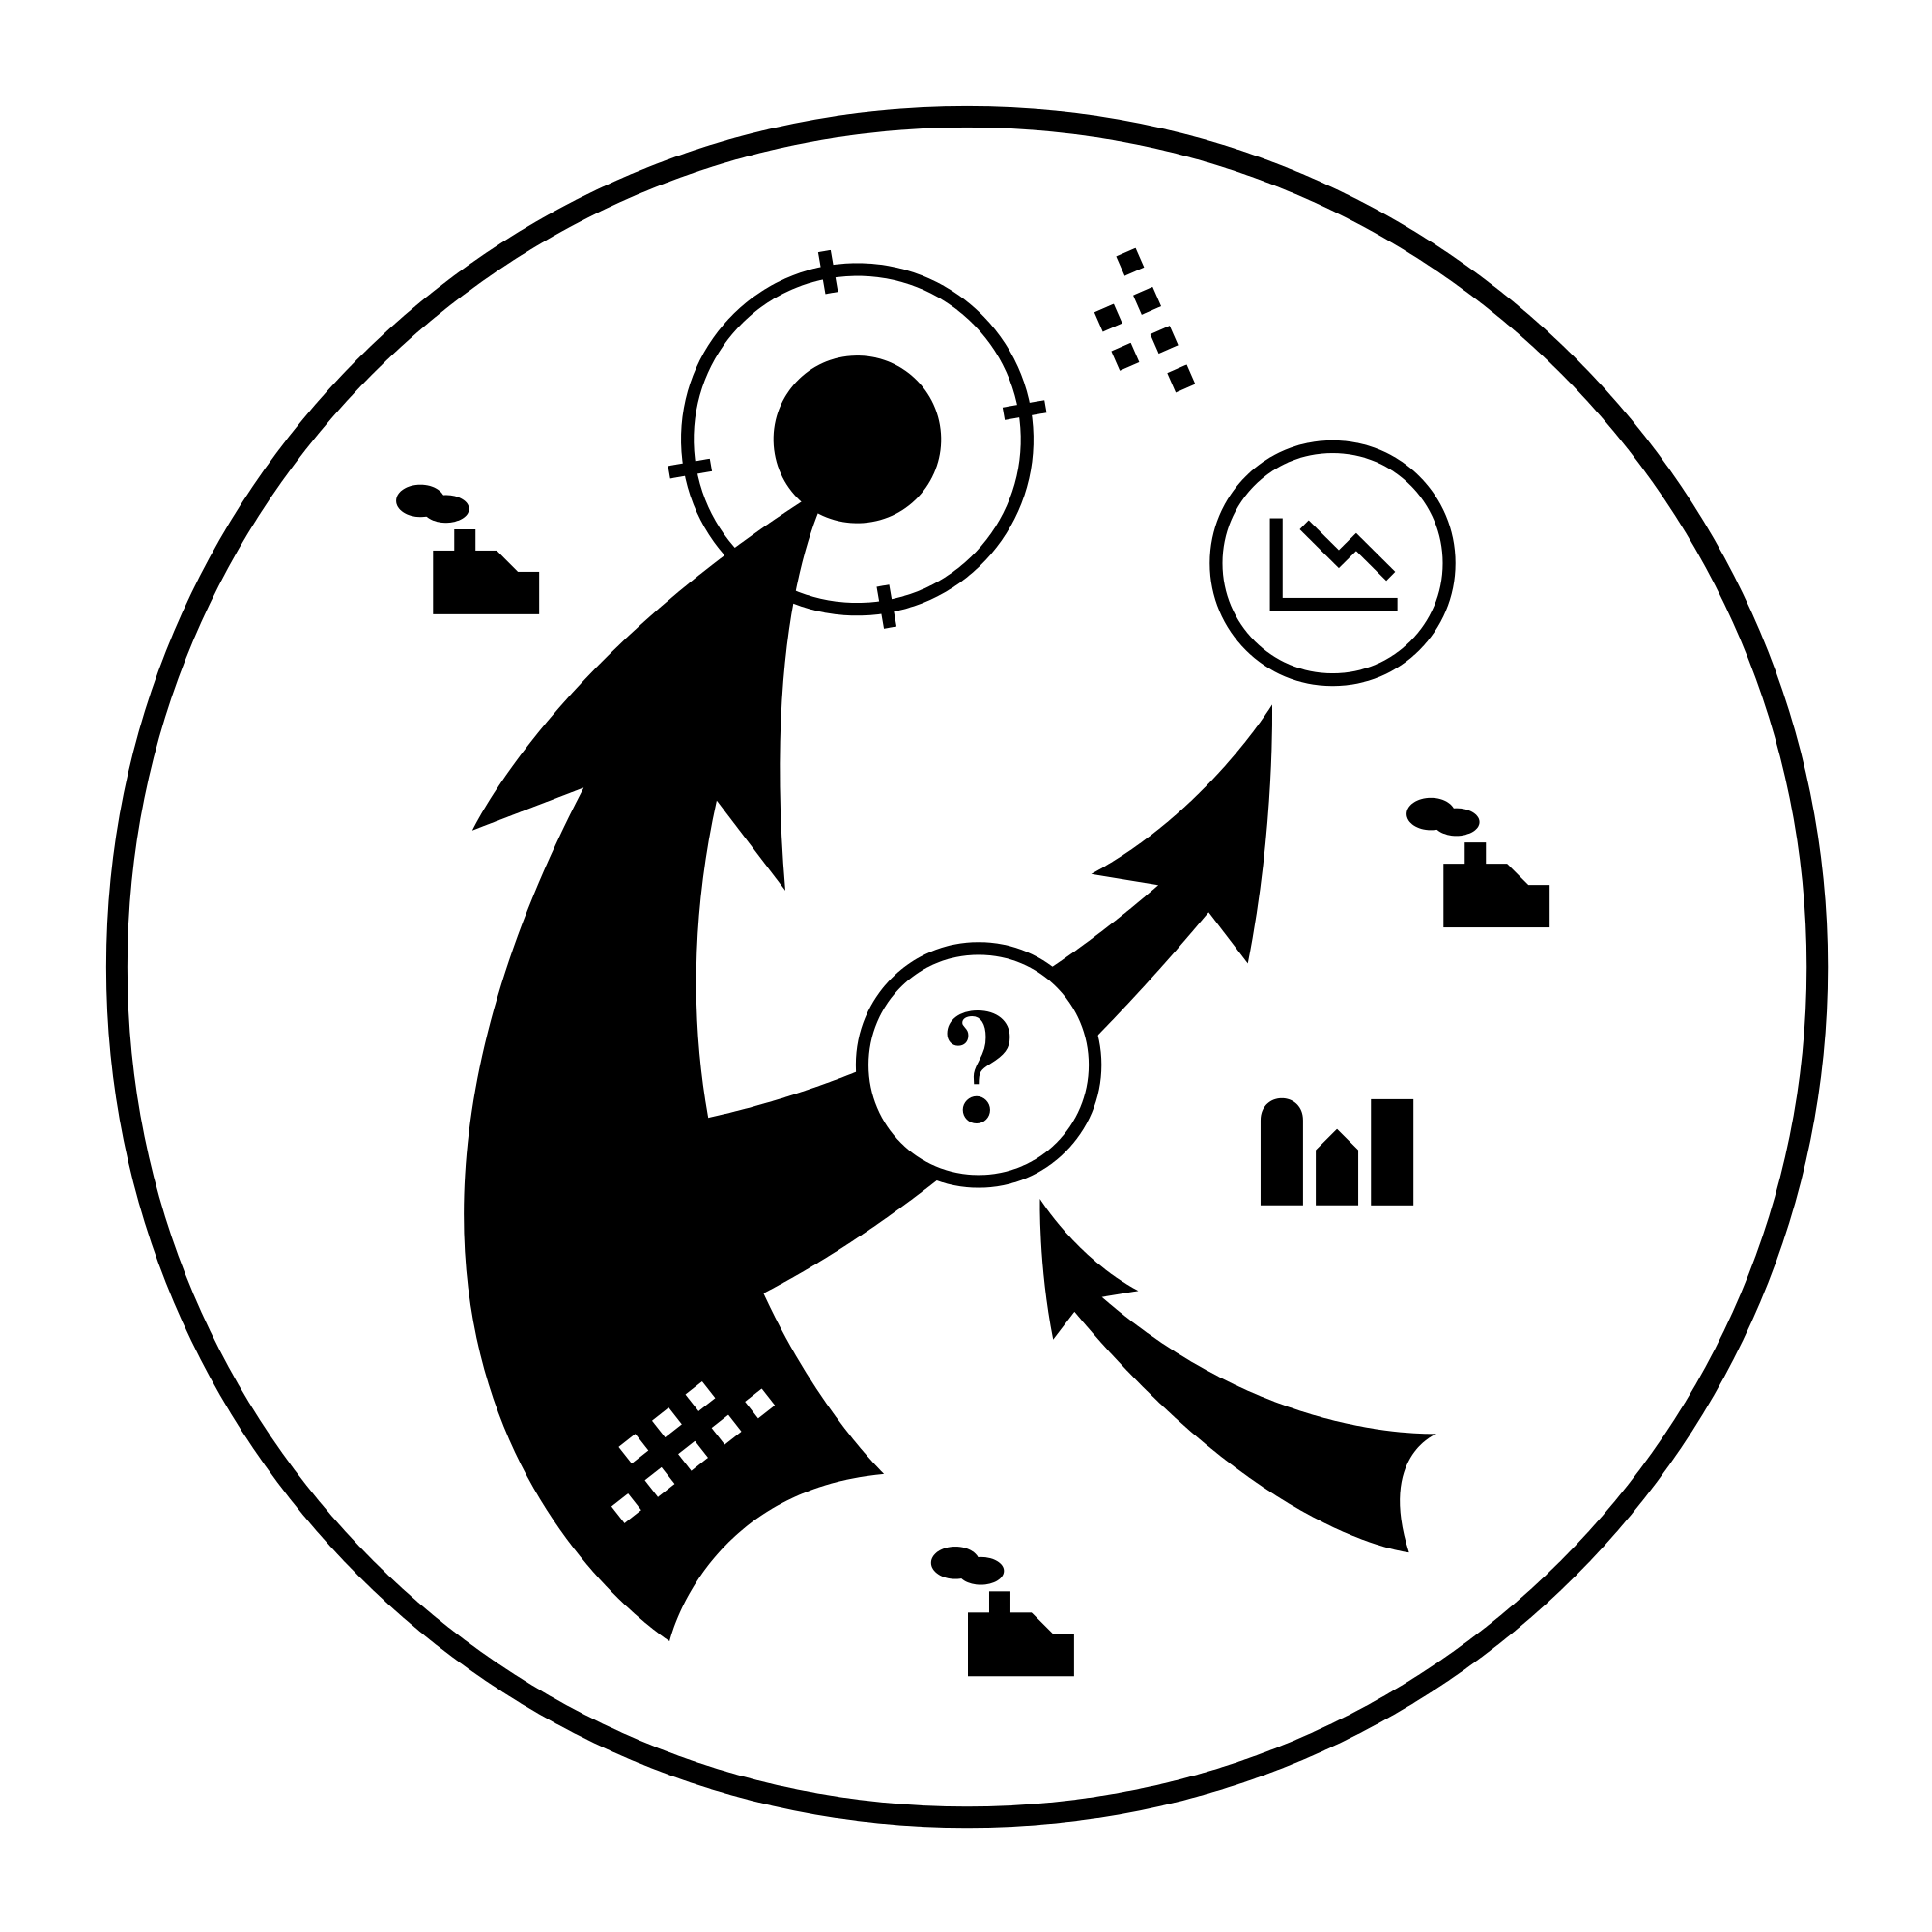 Image of multiple arrows pointing to the top of an enclosed circle with icons of factories, targets and bar graphs